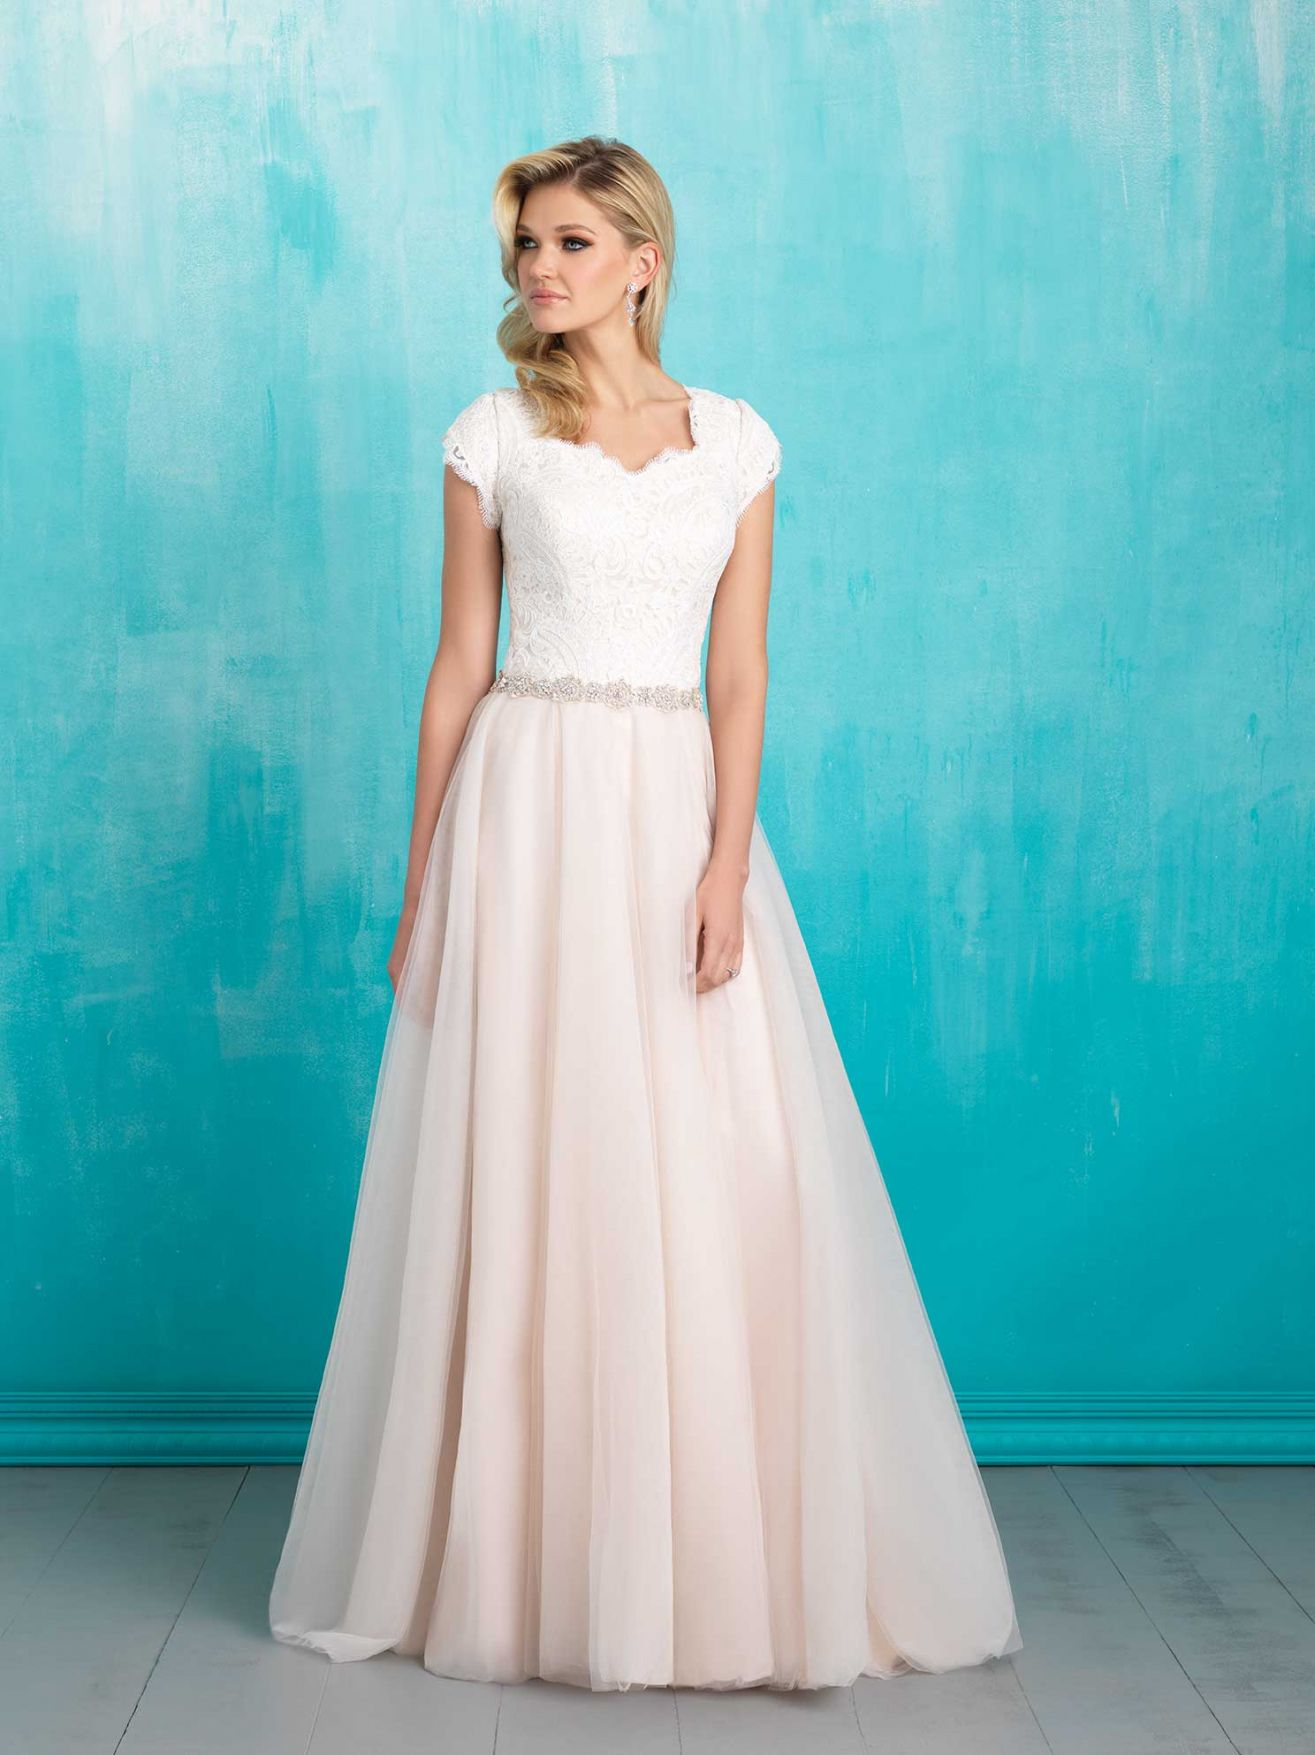 55+ Conservative Wedding Dresses - Dress for Country Wedding Guest ...